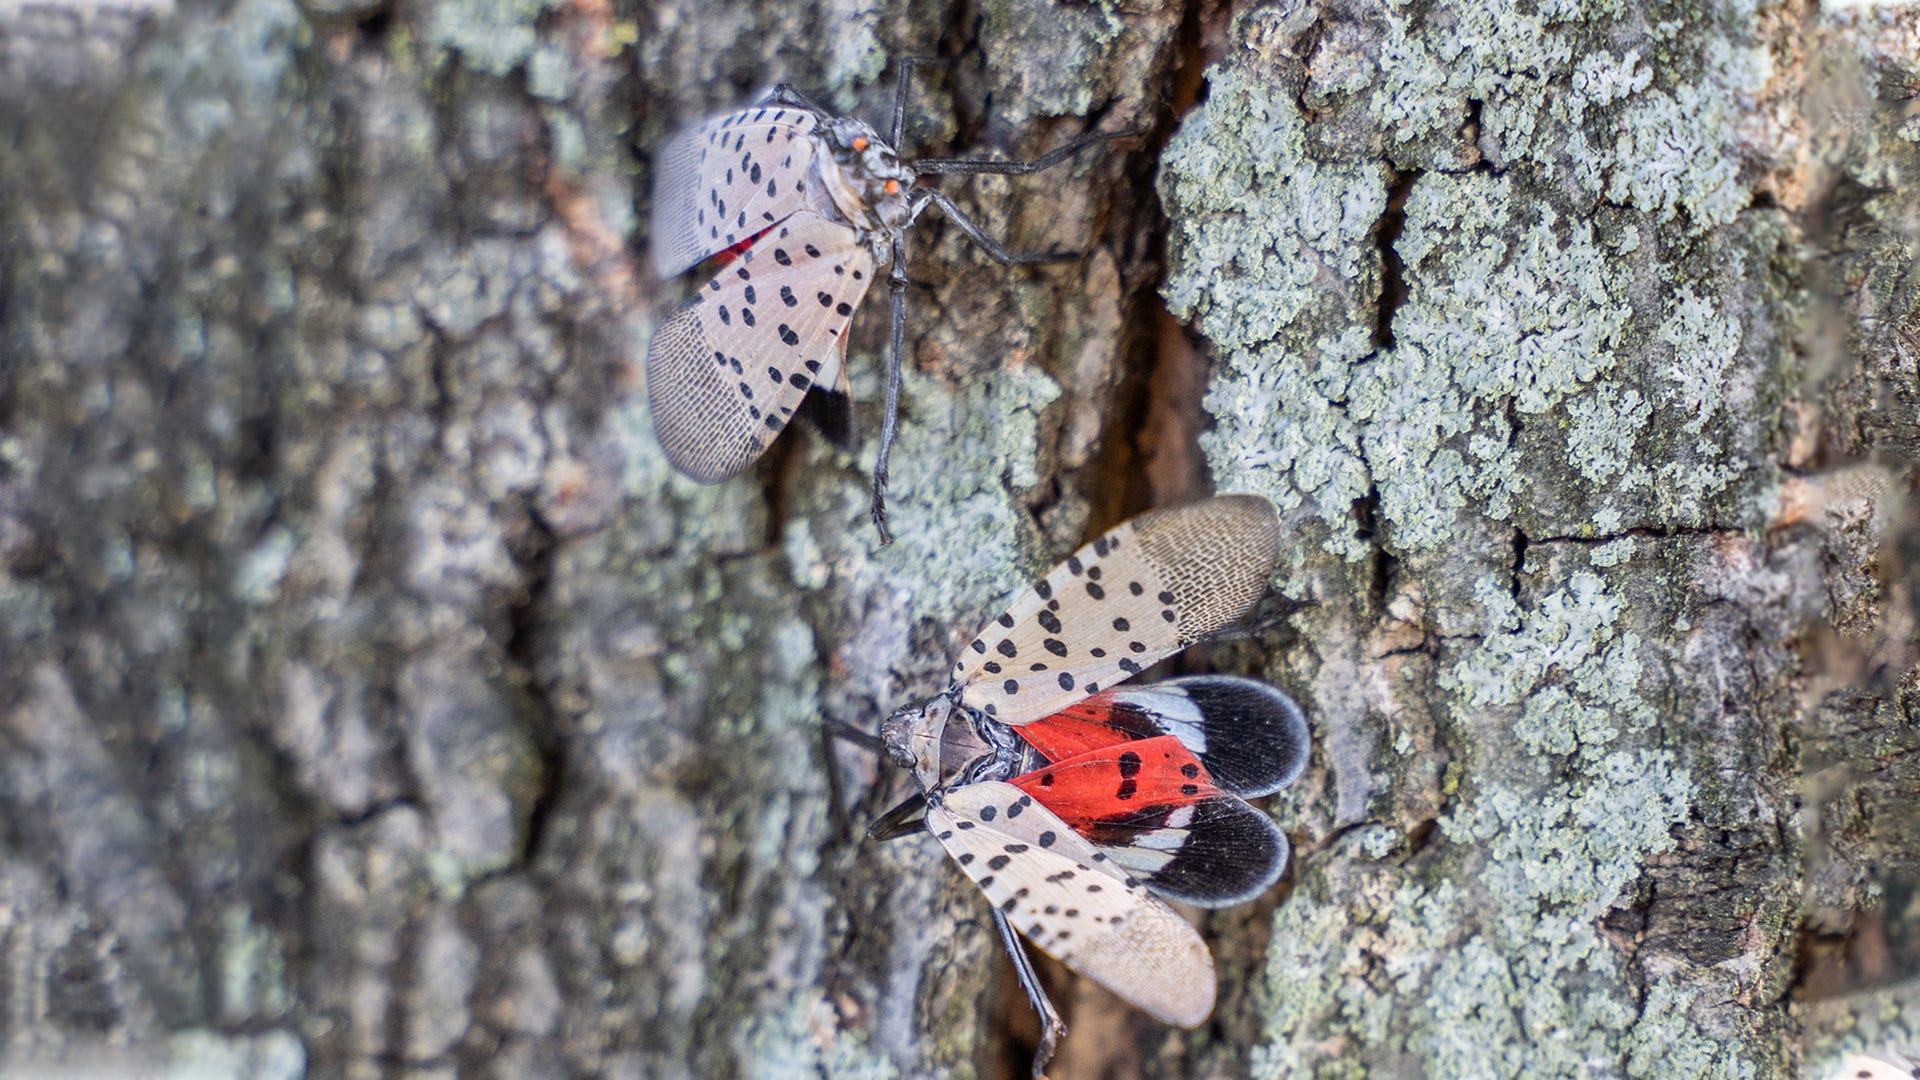 How You Can Help Stop Spotted Lanternflies